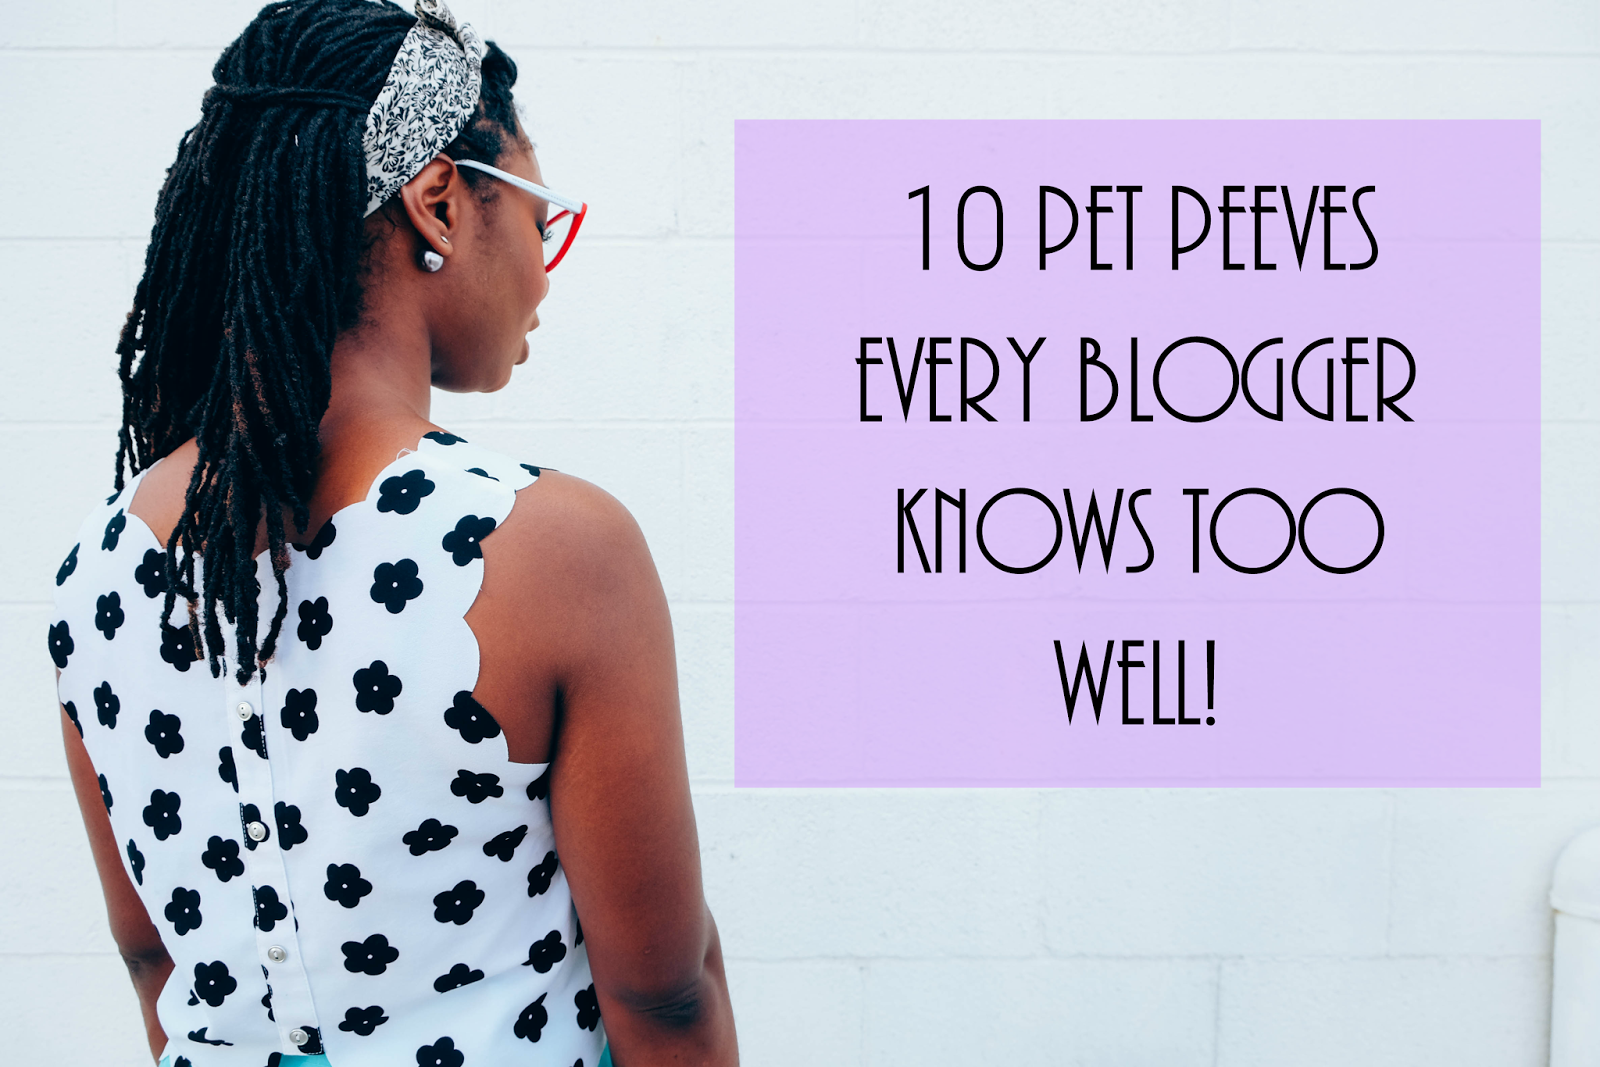 blogger insight 10 pet peeves every blogger knows too well just